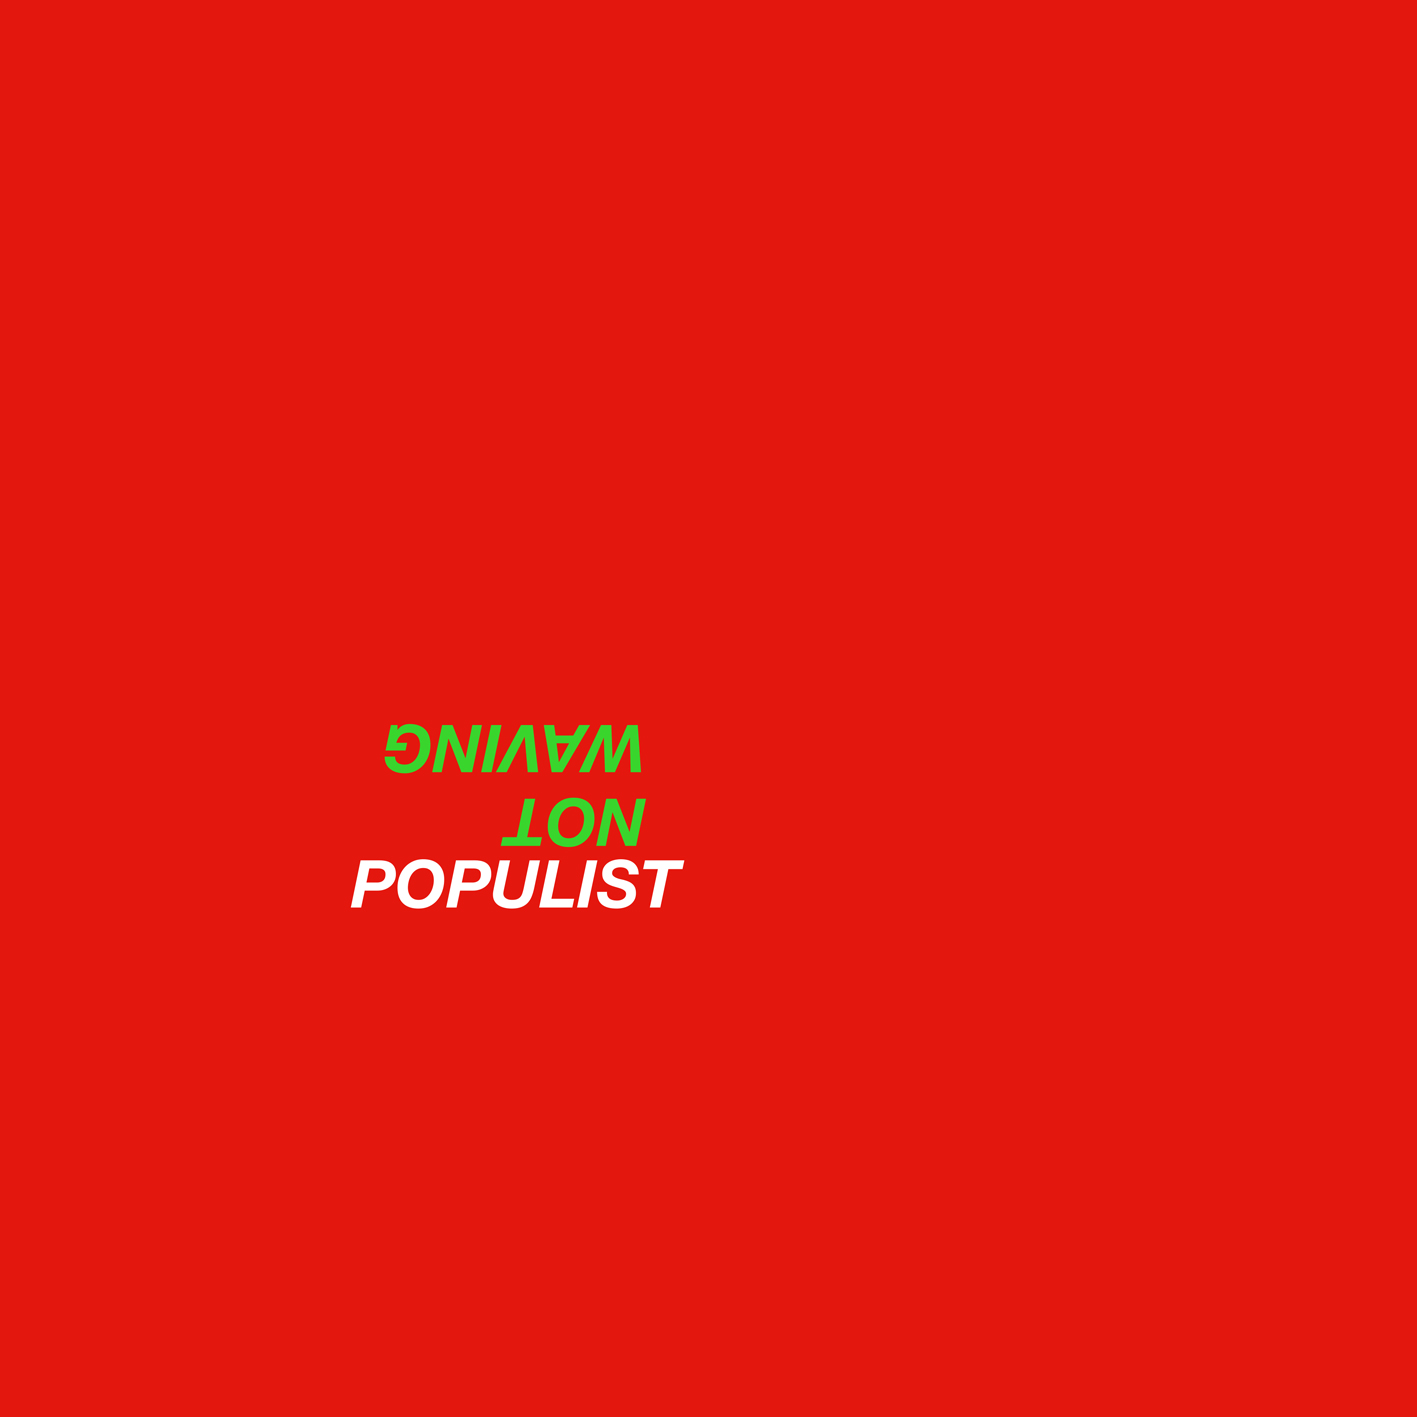 """Not Waving - Populist EP [E026]  • Not Waving recoils back to his Ecstatic label after an ace LP + 12""""s for Diagonal  • Four tracks flirting with sleazy New Beat, nEuro EBM, Acid n0!se and deep-raved Italo • Edition of 500 copies, initial 200 pressed up on coloured vinyl. Housed in fluoro green/hot red jacket • Mastered and cut by Matt Colton @ Alchemy  Not Waving takes 2017 by the scruff with his Populist EP, consolidating the myriad stripes of his acclaimed Animals album in four peaktime hammers forged for darkrooms, basements and warehouses alike.  If last year's LP saw you thru from day-into-night, or vice-versa, this one is aimed squarely at the gurny hours of abandon in between, with ferocious acid lines and jabbing drums stripped down and strapped up to prompt reckless behaviour on the 'floor.  Containing his first material written in the wake of Animals, the Populist EP is Alessio Natalizia a.k.a. Not Waving's strongest dancefloor statement since the 1-sided Get Serious (2015) bullet. It finds him taking the opportunity to make straight-up bangers, rather than 'songs', which were thoroughly tried and tested over successive tours of the USA and countless shows in Europe too in the last 9 months.  Too Many Freaks is an anthem in waiting, harnessing a barely-hinged sense of chaos between its careening synth lead, acid squabble and velvet-clad kicks, before the dry-rutting jag and plaintive vox of Vibe Killer takes a dog-grip like This Heat meeting Tuning Circuits.  Top marks go to the check-your-stylus intro for Control Myself on the B-side, which holds its fizzy line into a fetid crevice of what sounds Russell Haswell ramping with Powell, whereas the crooked clampjaw groove of Ur Lucky Ur Still Alive pivots around a sample of a lone raver at Atonal, Berlin """"who had no idea how she got there and what she did the night before"""". A ruddy good night all-round, then?  Alessio Natalizia a.k.a. Not Waving co-owns the Ecstatic label alongside Sam Willis. Not Waving is """